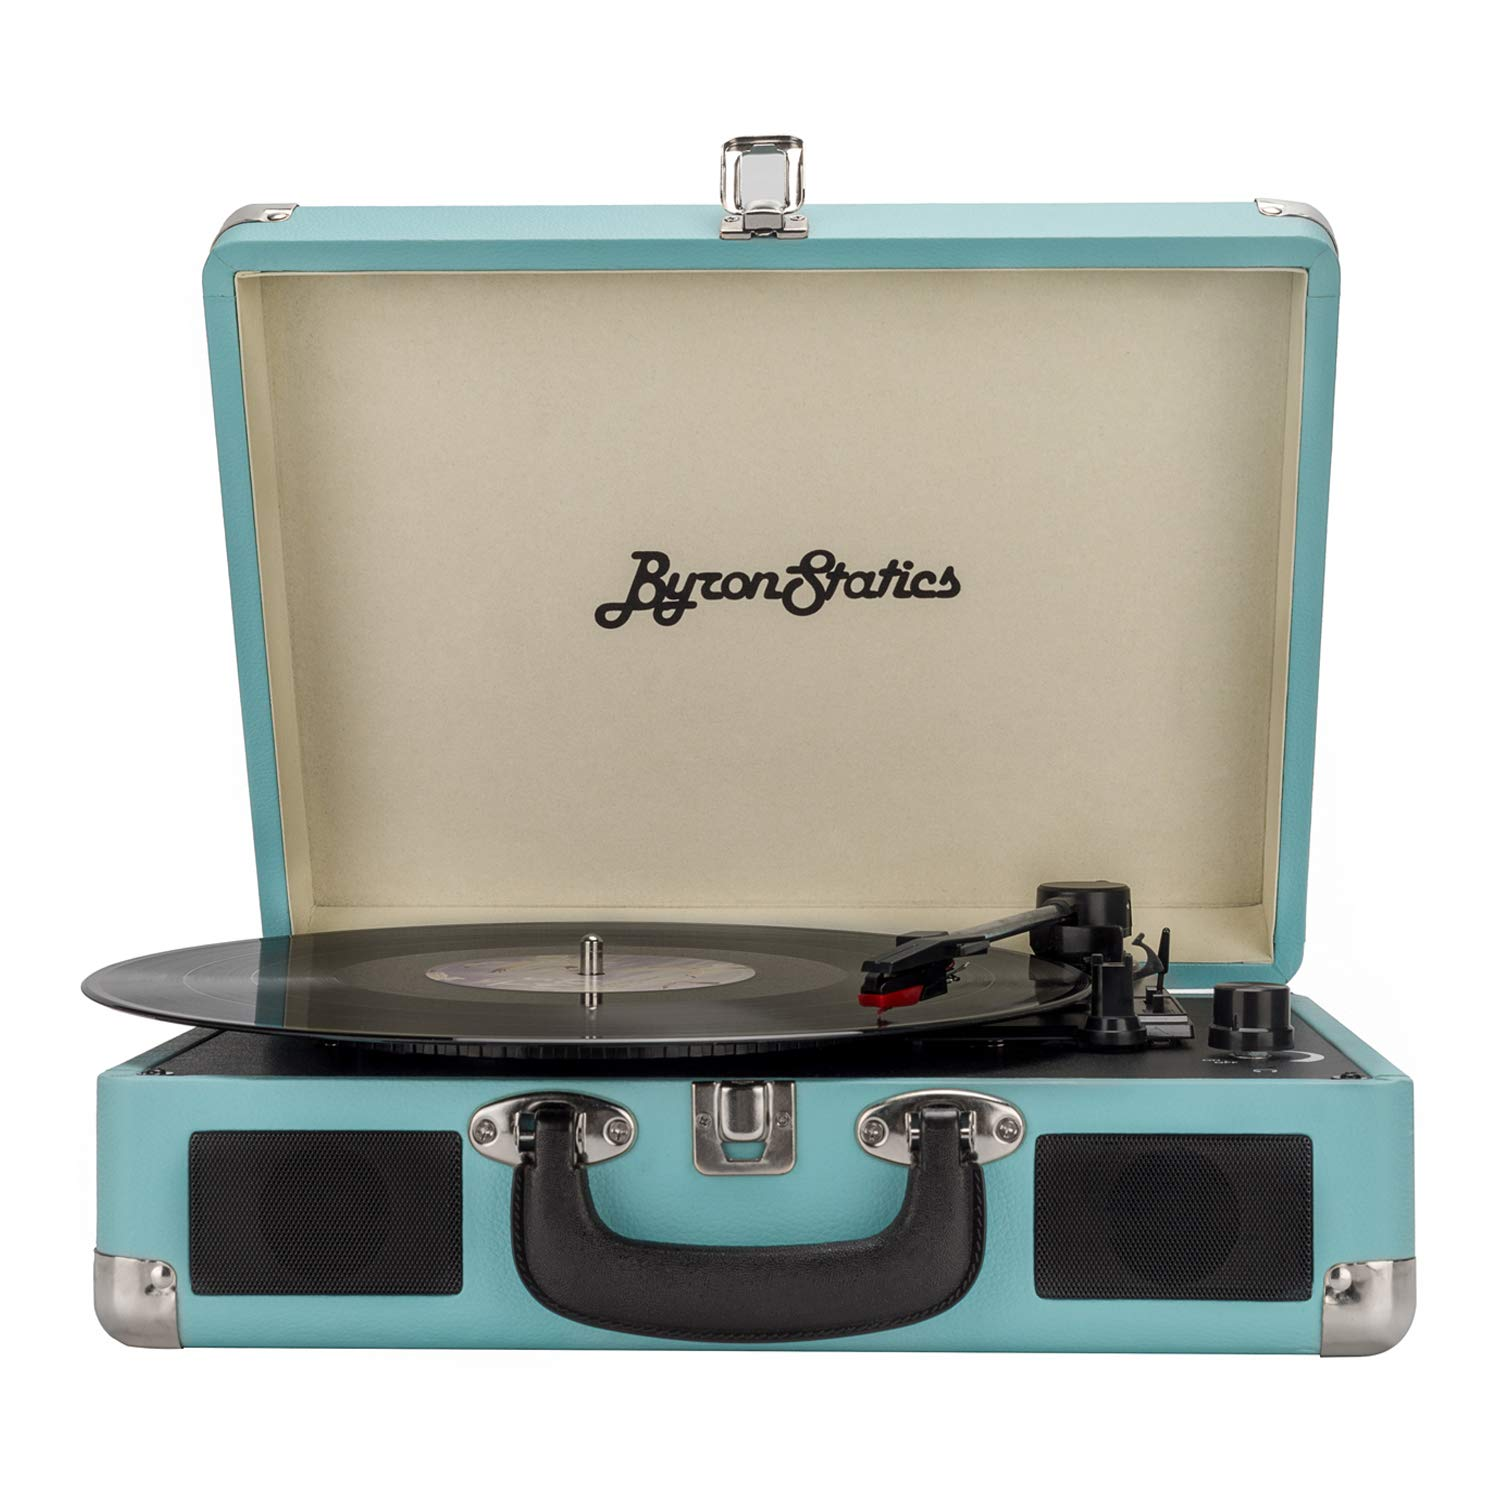 Byron Statics Turntable Record Player Speaker Portable Vinyl Player 3 Speed Dust Free Suitcase Autostop RCA Output AUX Input Headphone Jack Belt-Driven Extra Stylus Free Audio Cable 9W Teal by Byron Statics